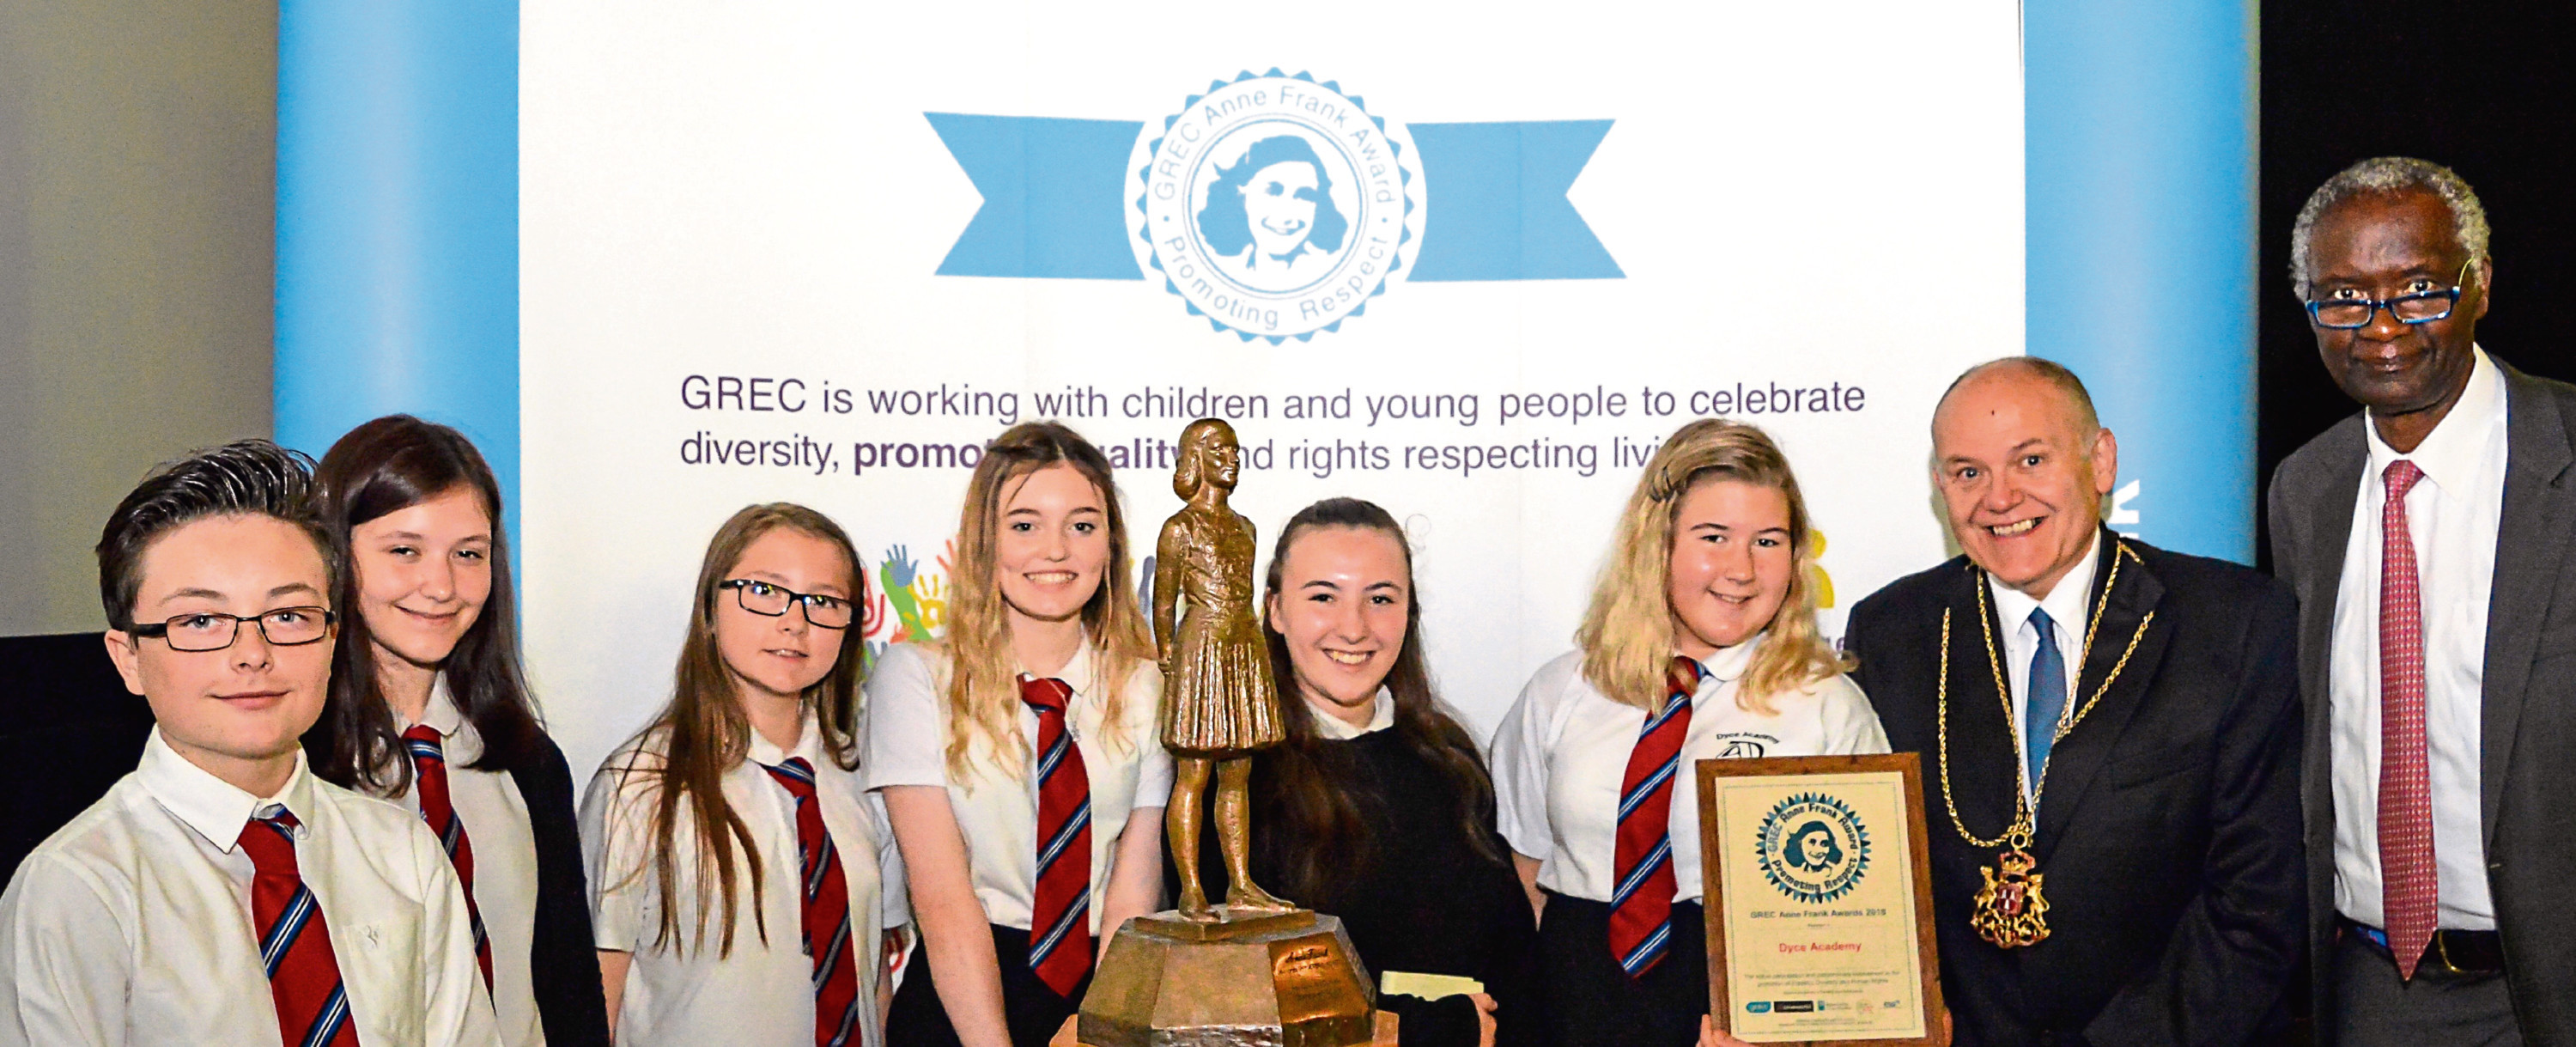 More than 100 pupils from across the north-east took part in an event dedicated to the memory of Anne Frank